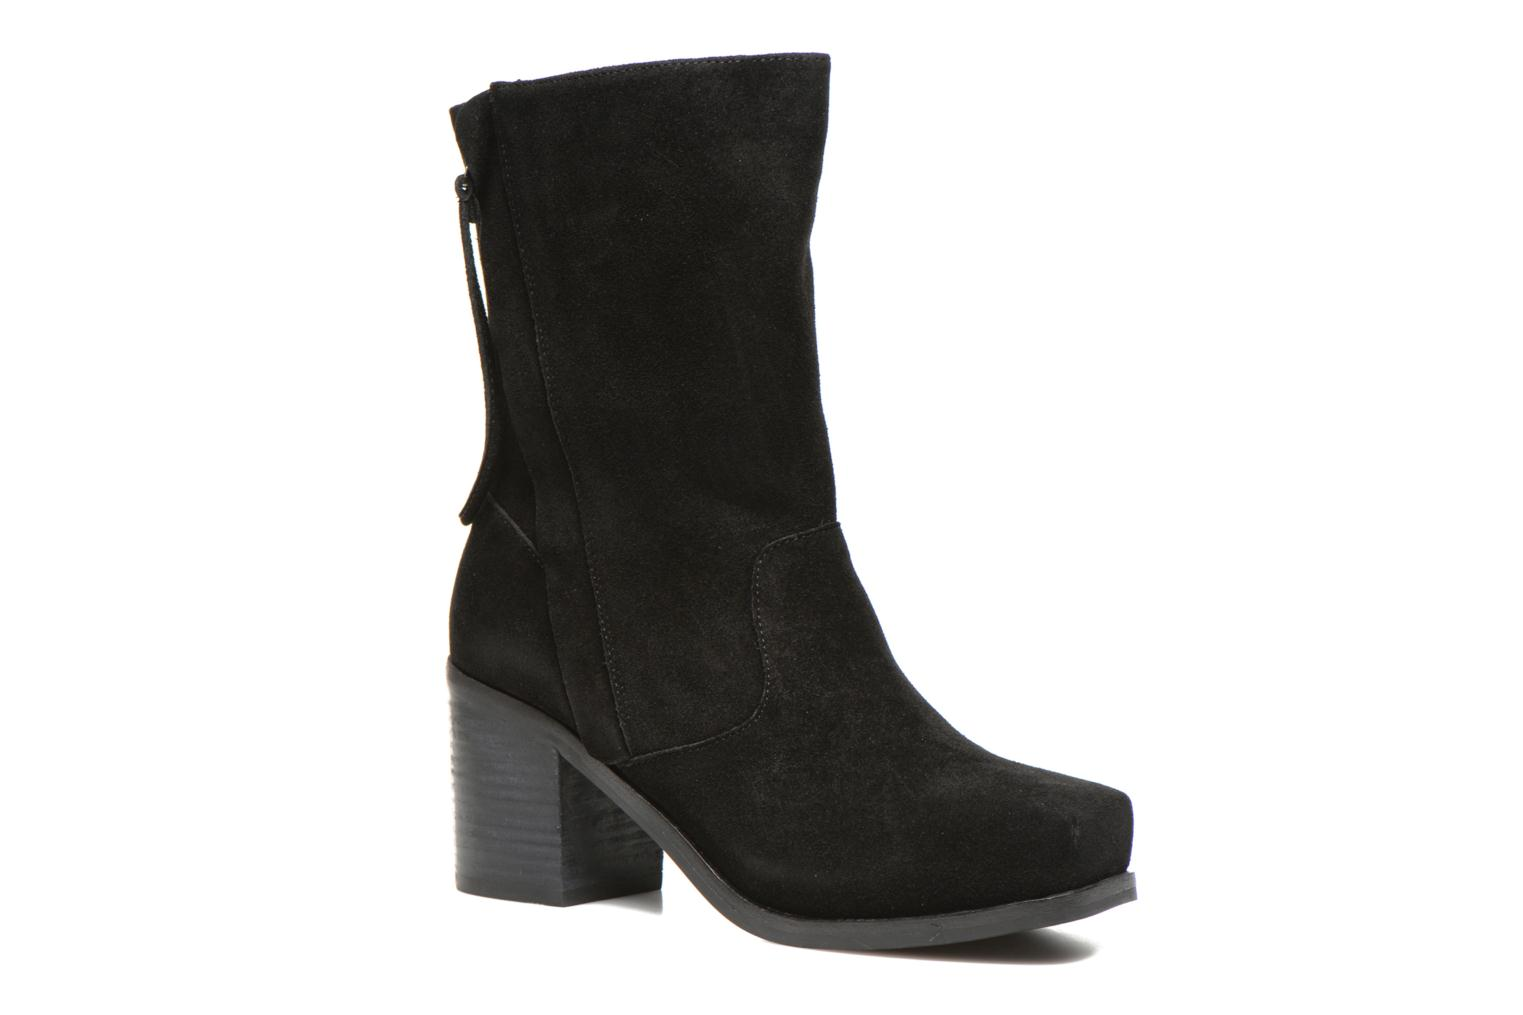 Marques Chaussure femme Intentionally blank femme Poncho Black Suede